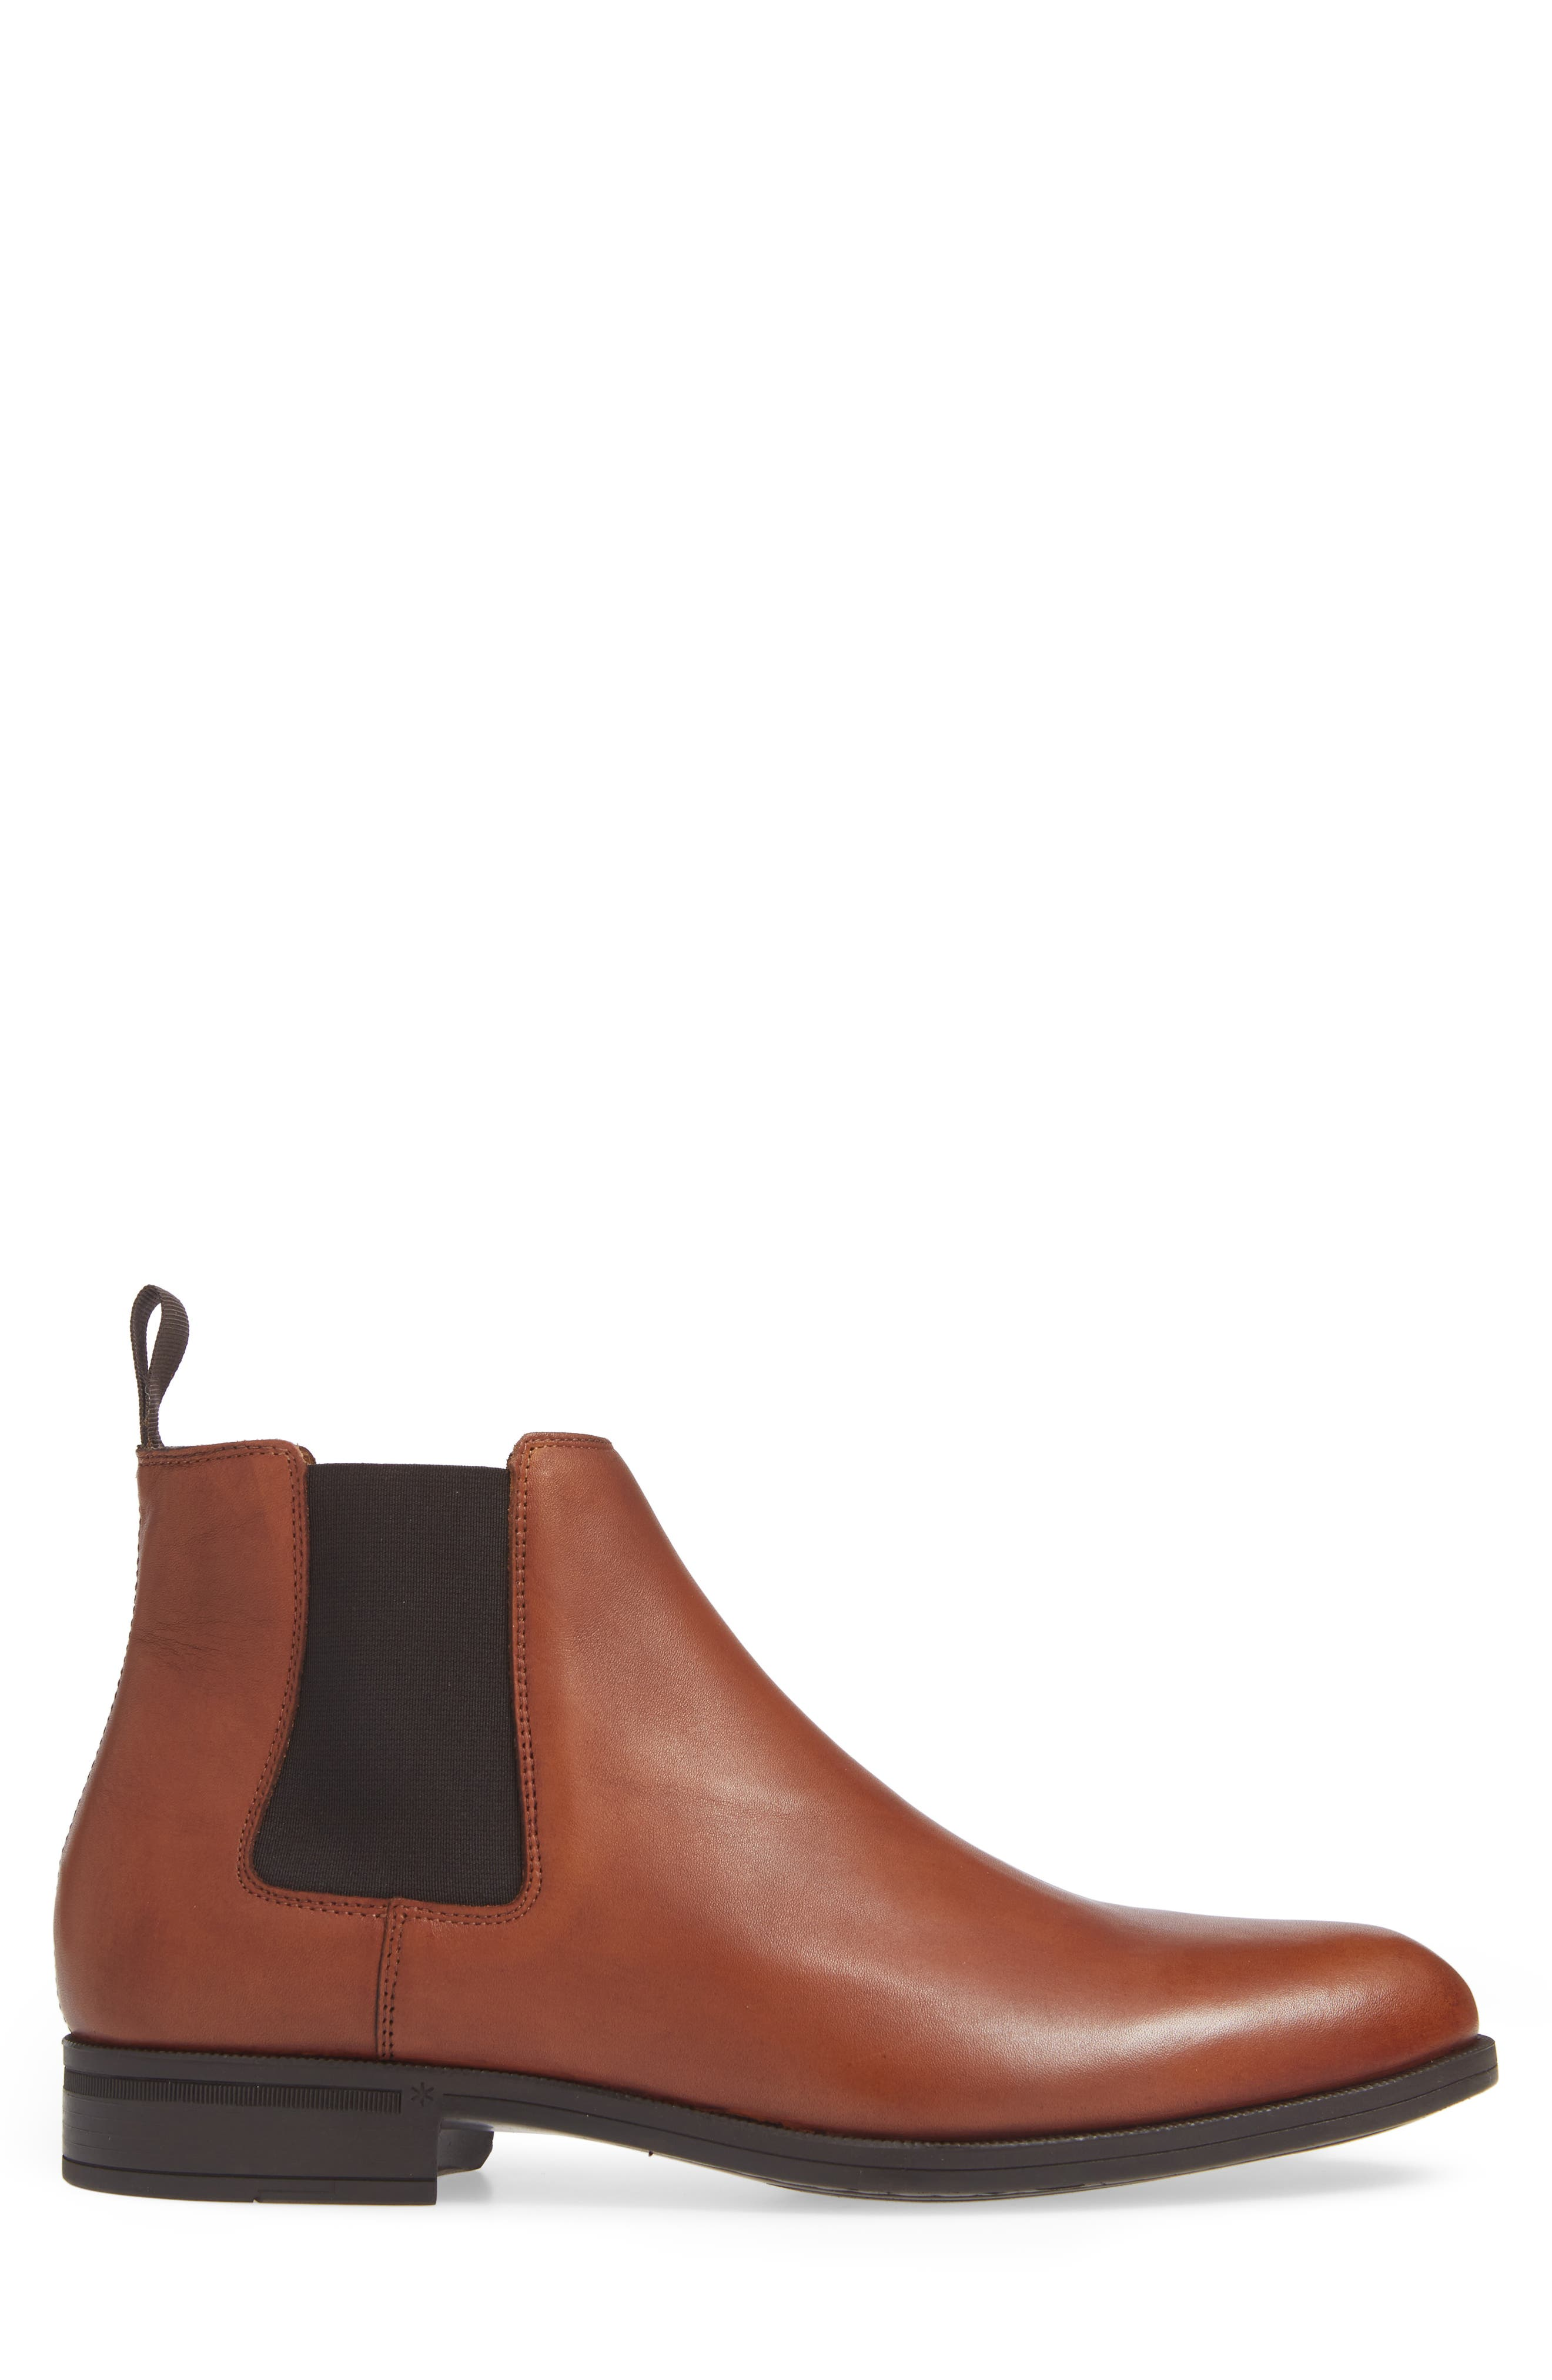 VINCE CAMUTO, Ivo Mid Chelsea Boot, Alternate thumbnail 3, color, COGNAC LEATHER